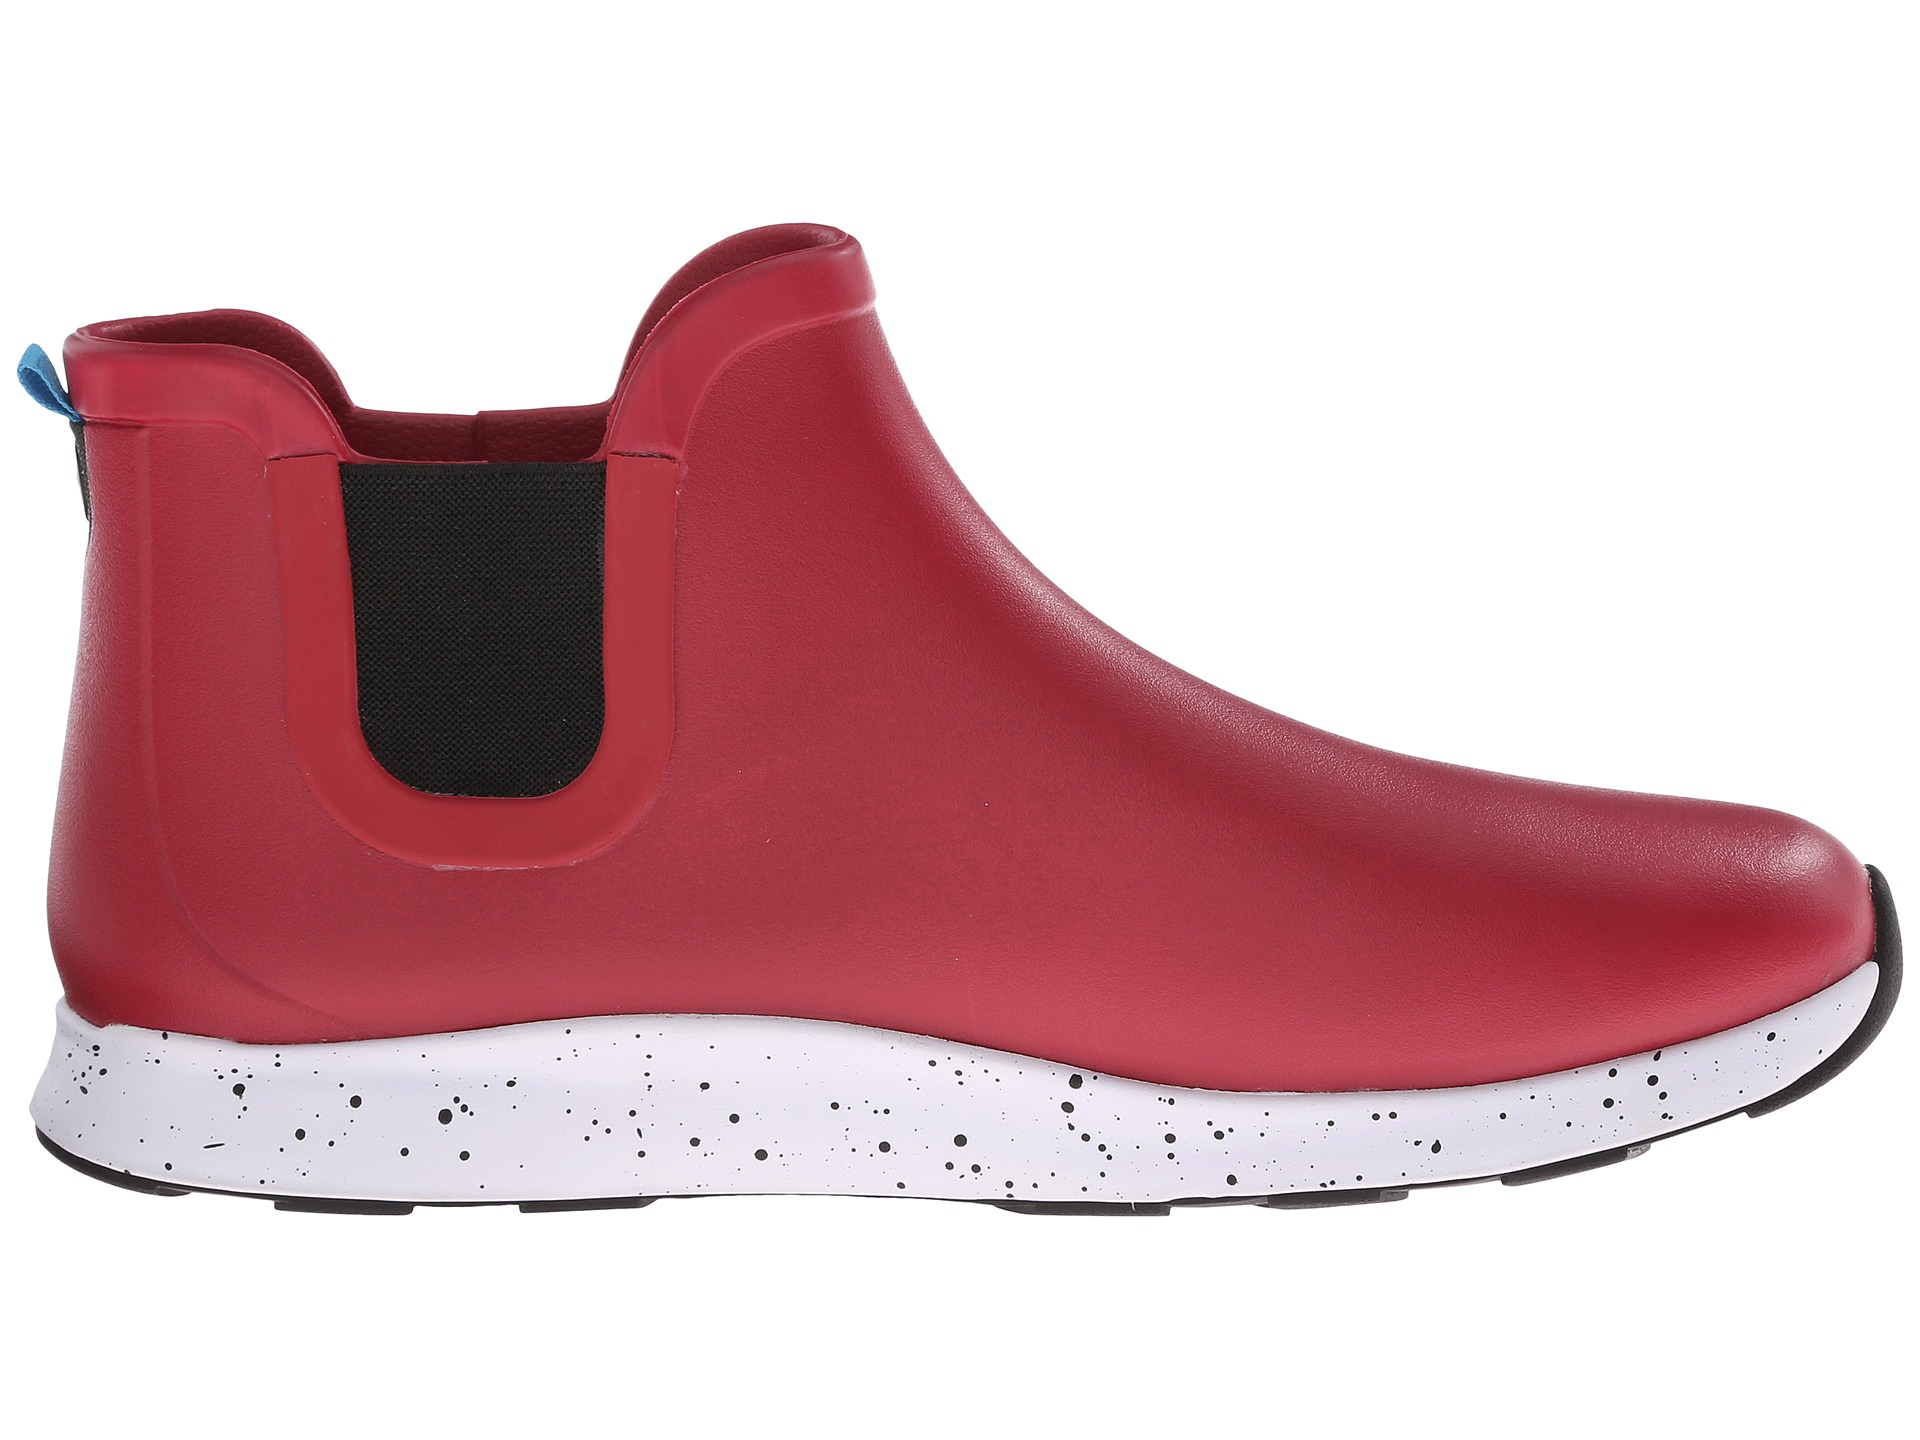 c90b22c66426ee Lyst - Native Shoes Apollo Rain in Red for Men